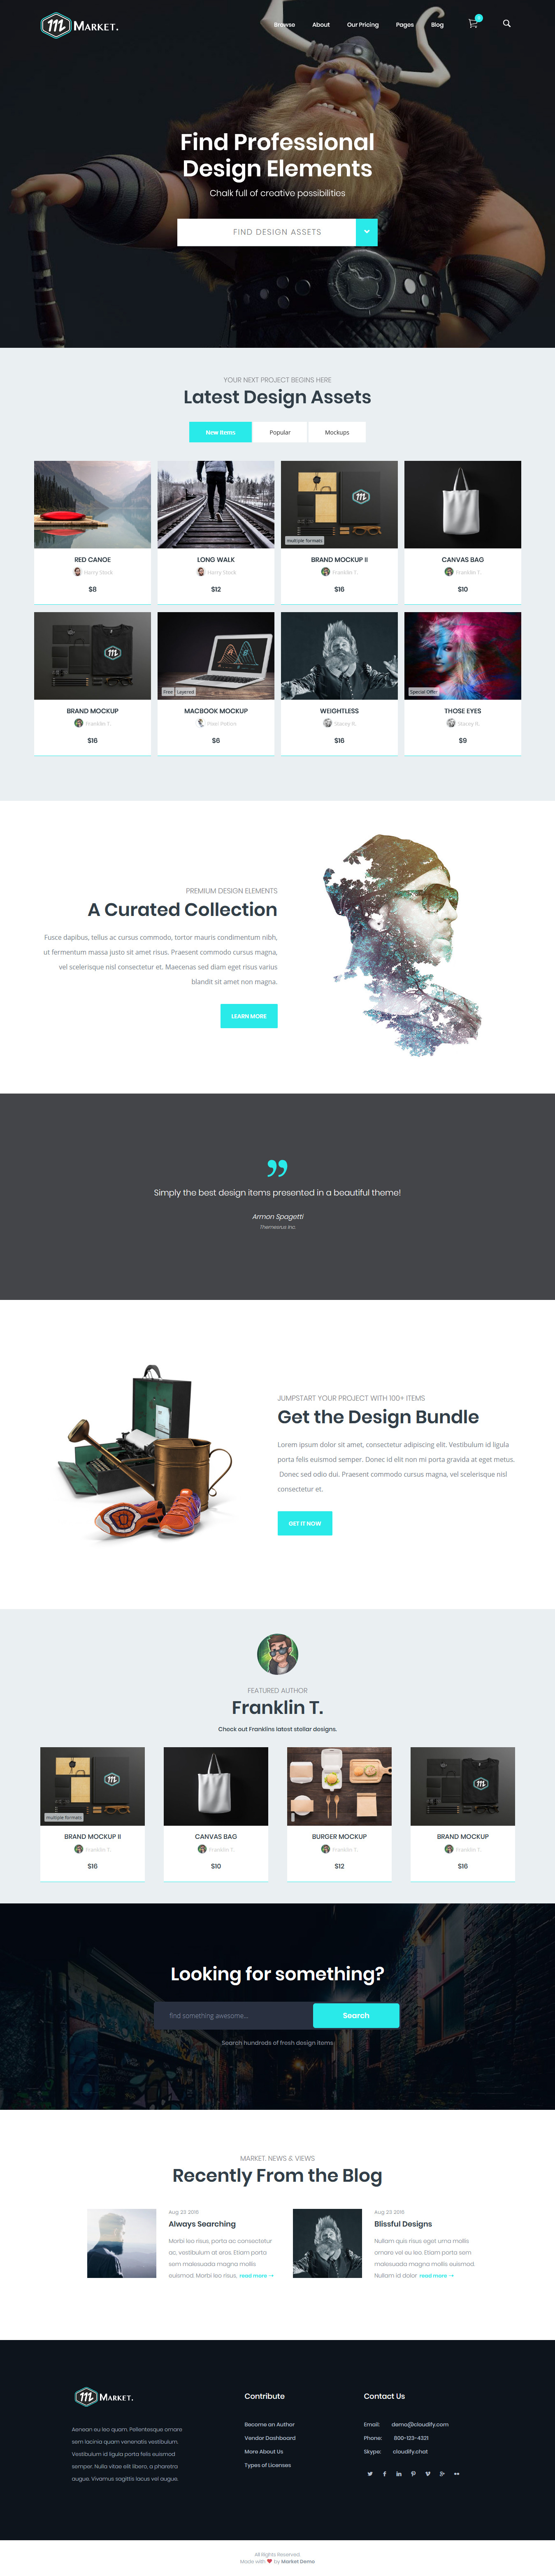 market best premium marketplace wordpress theme - 10+ Best Premium Marketplace WordPress Themes